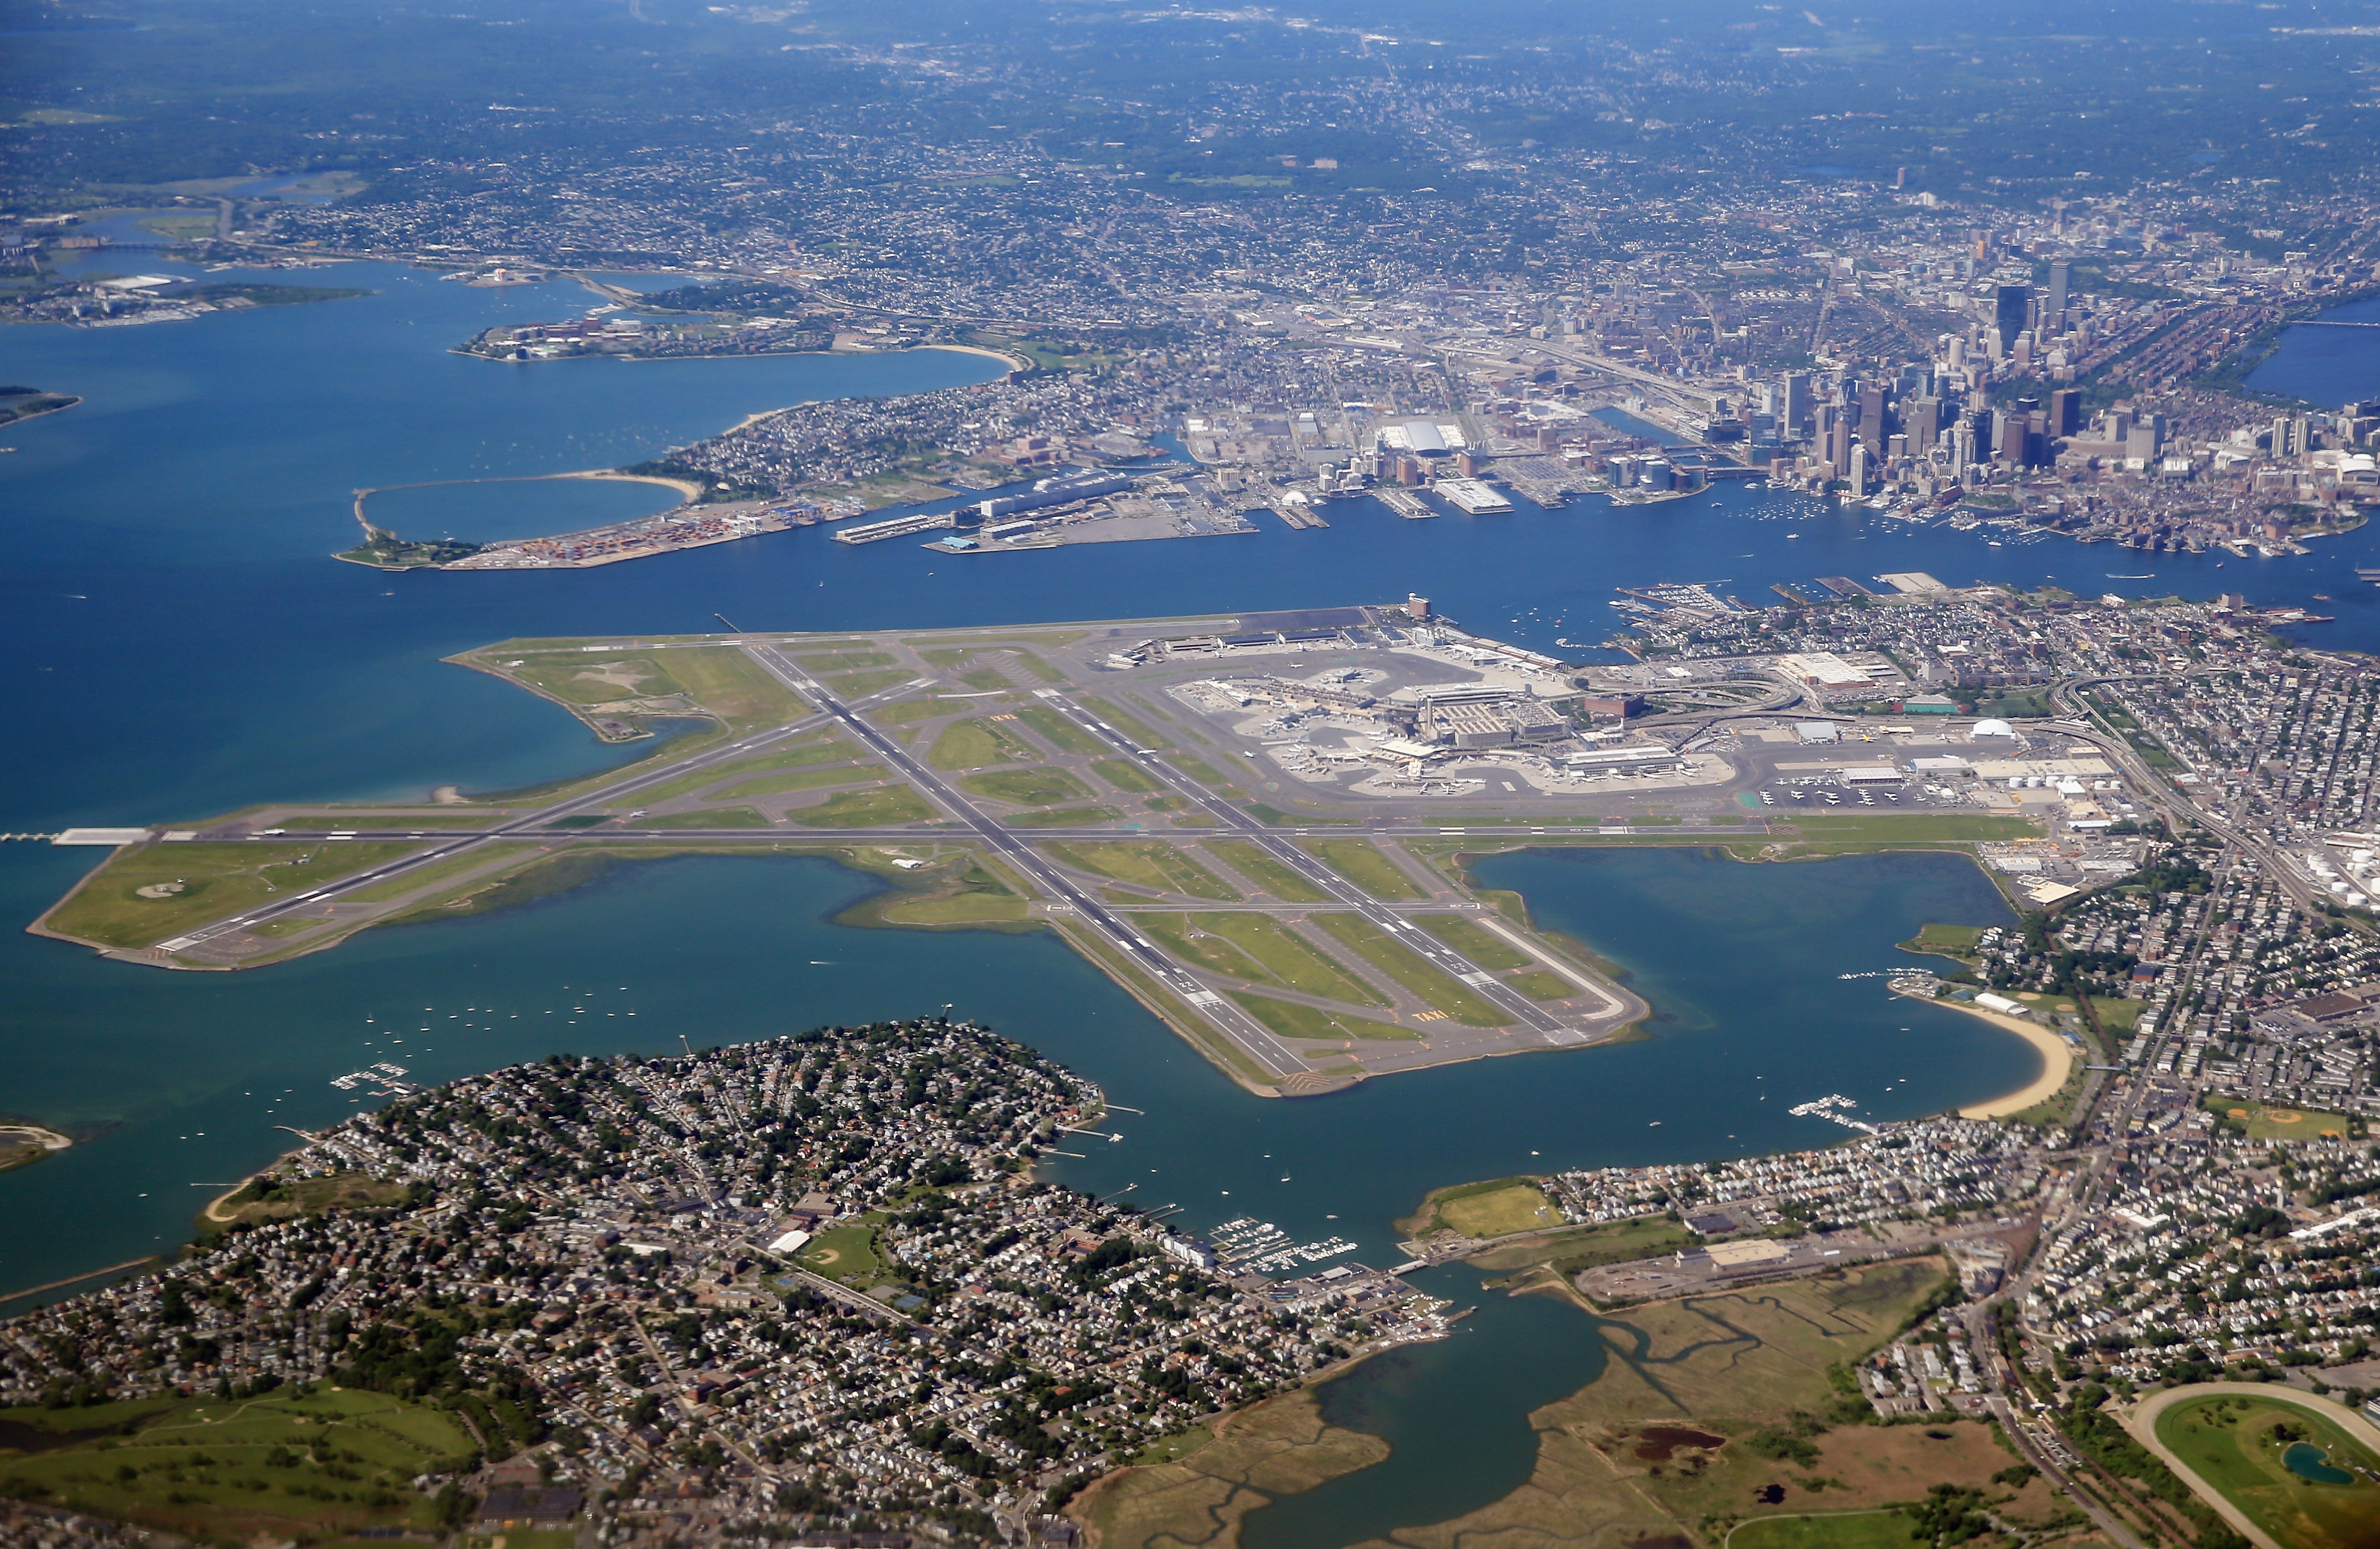 An aerial view of Logan Airport and the greater Boston area as photographed on June 4, 2013